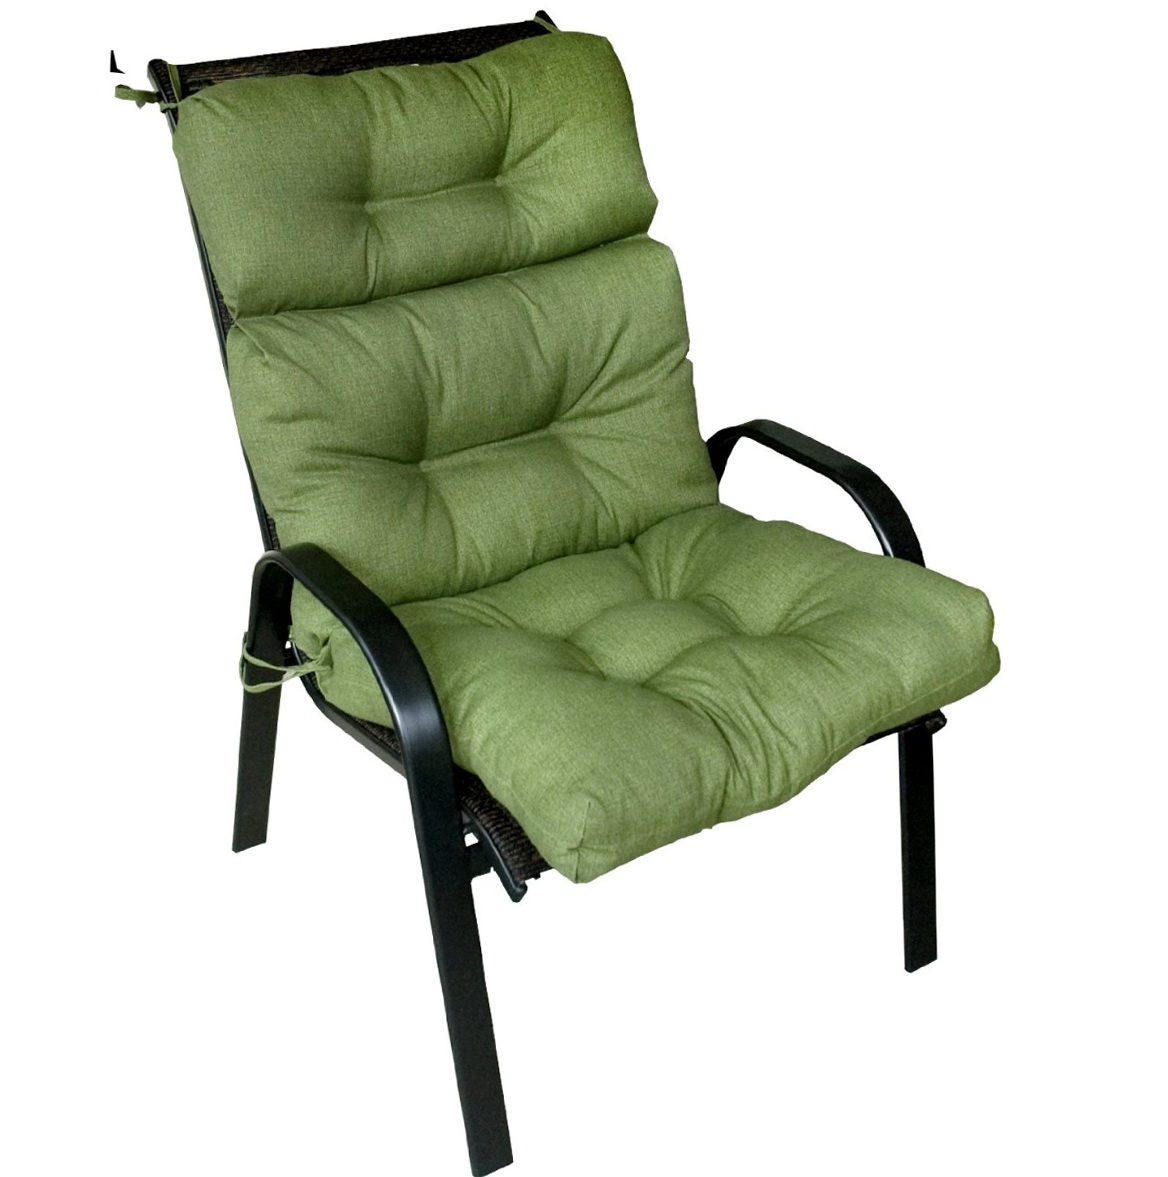 patio chairs for cheap boy potty chair cushions home design ideas